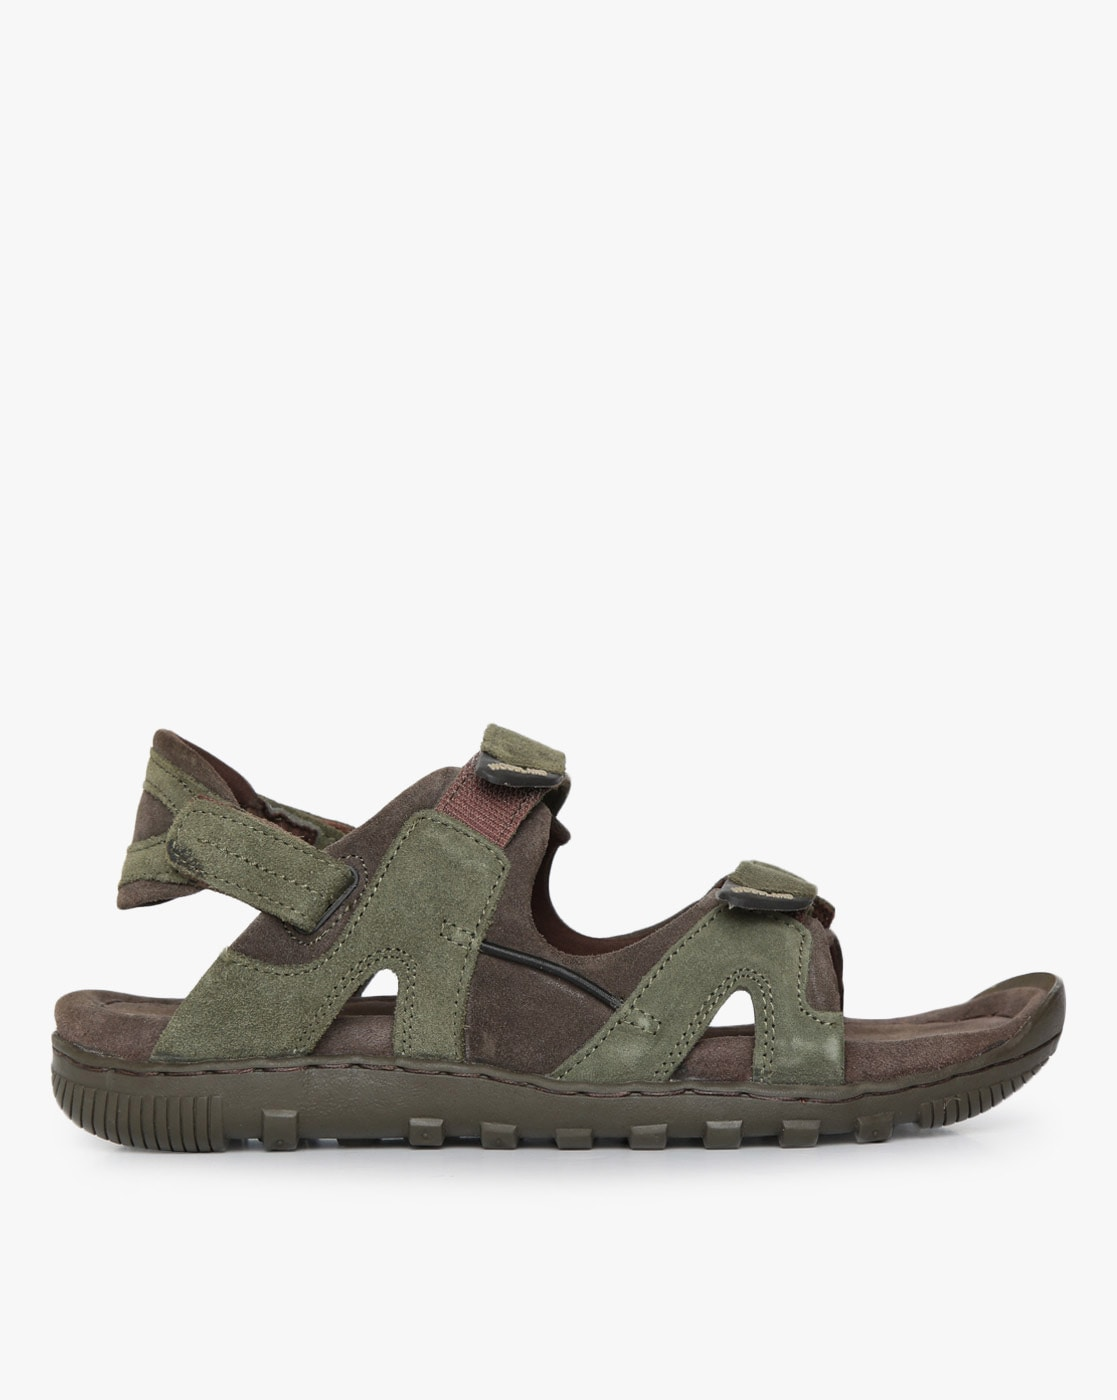 Buy Olive Green Casual Sandals for Men